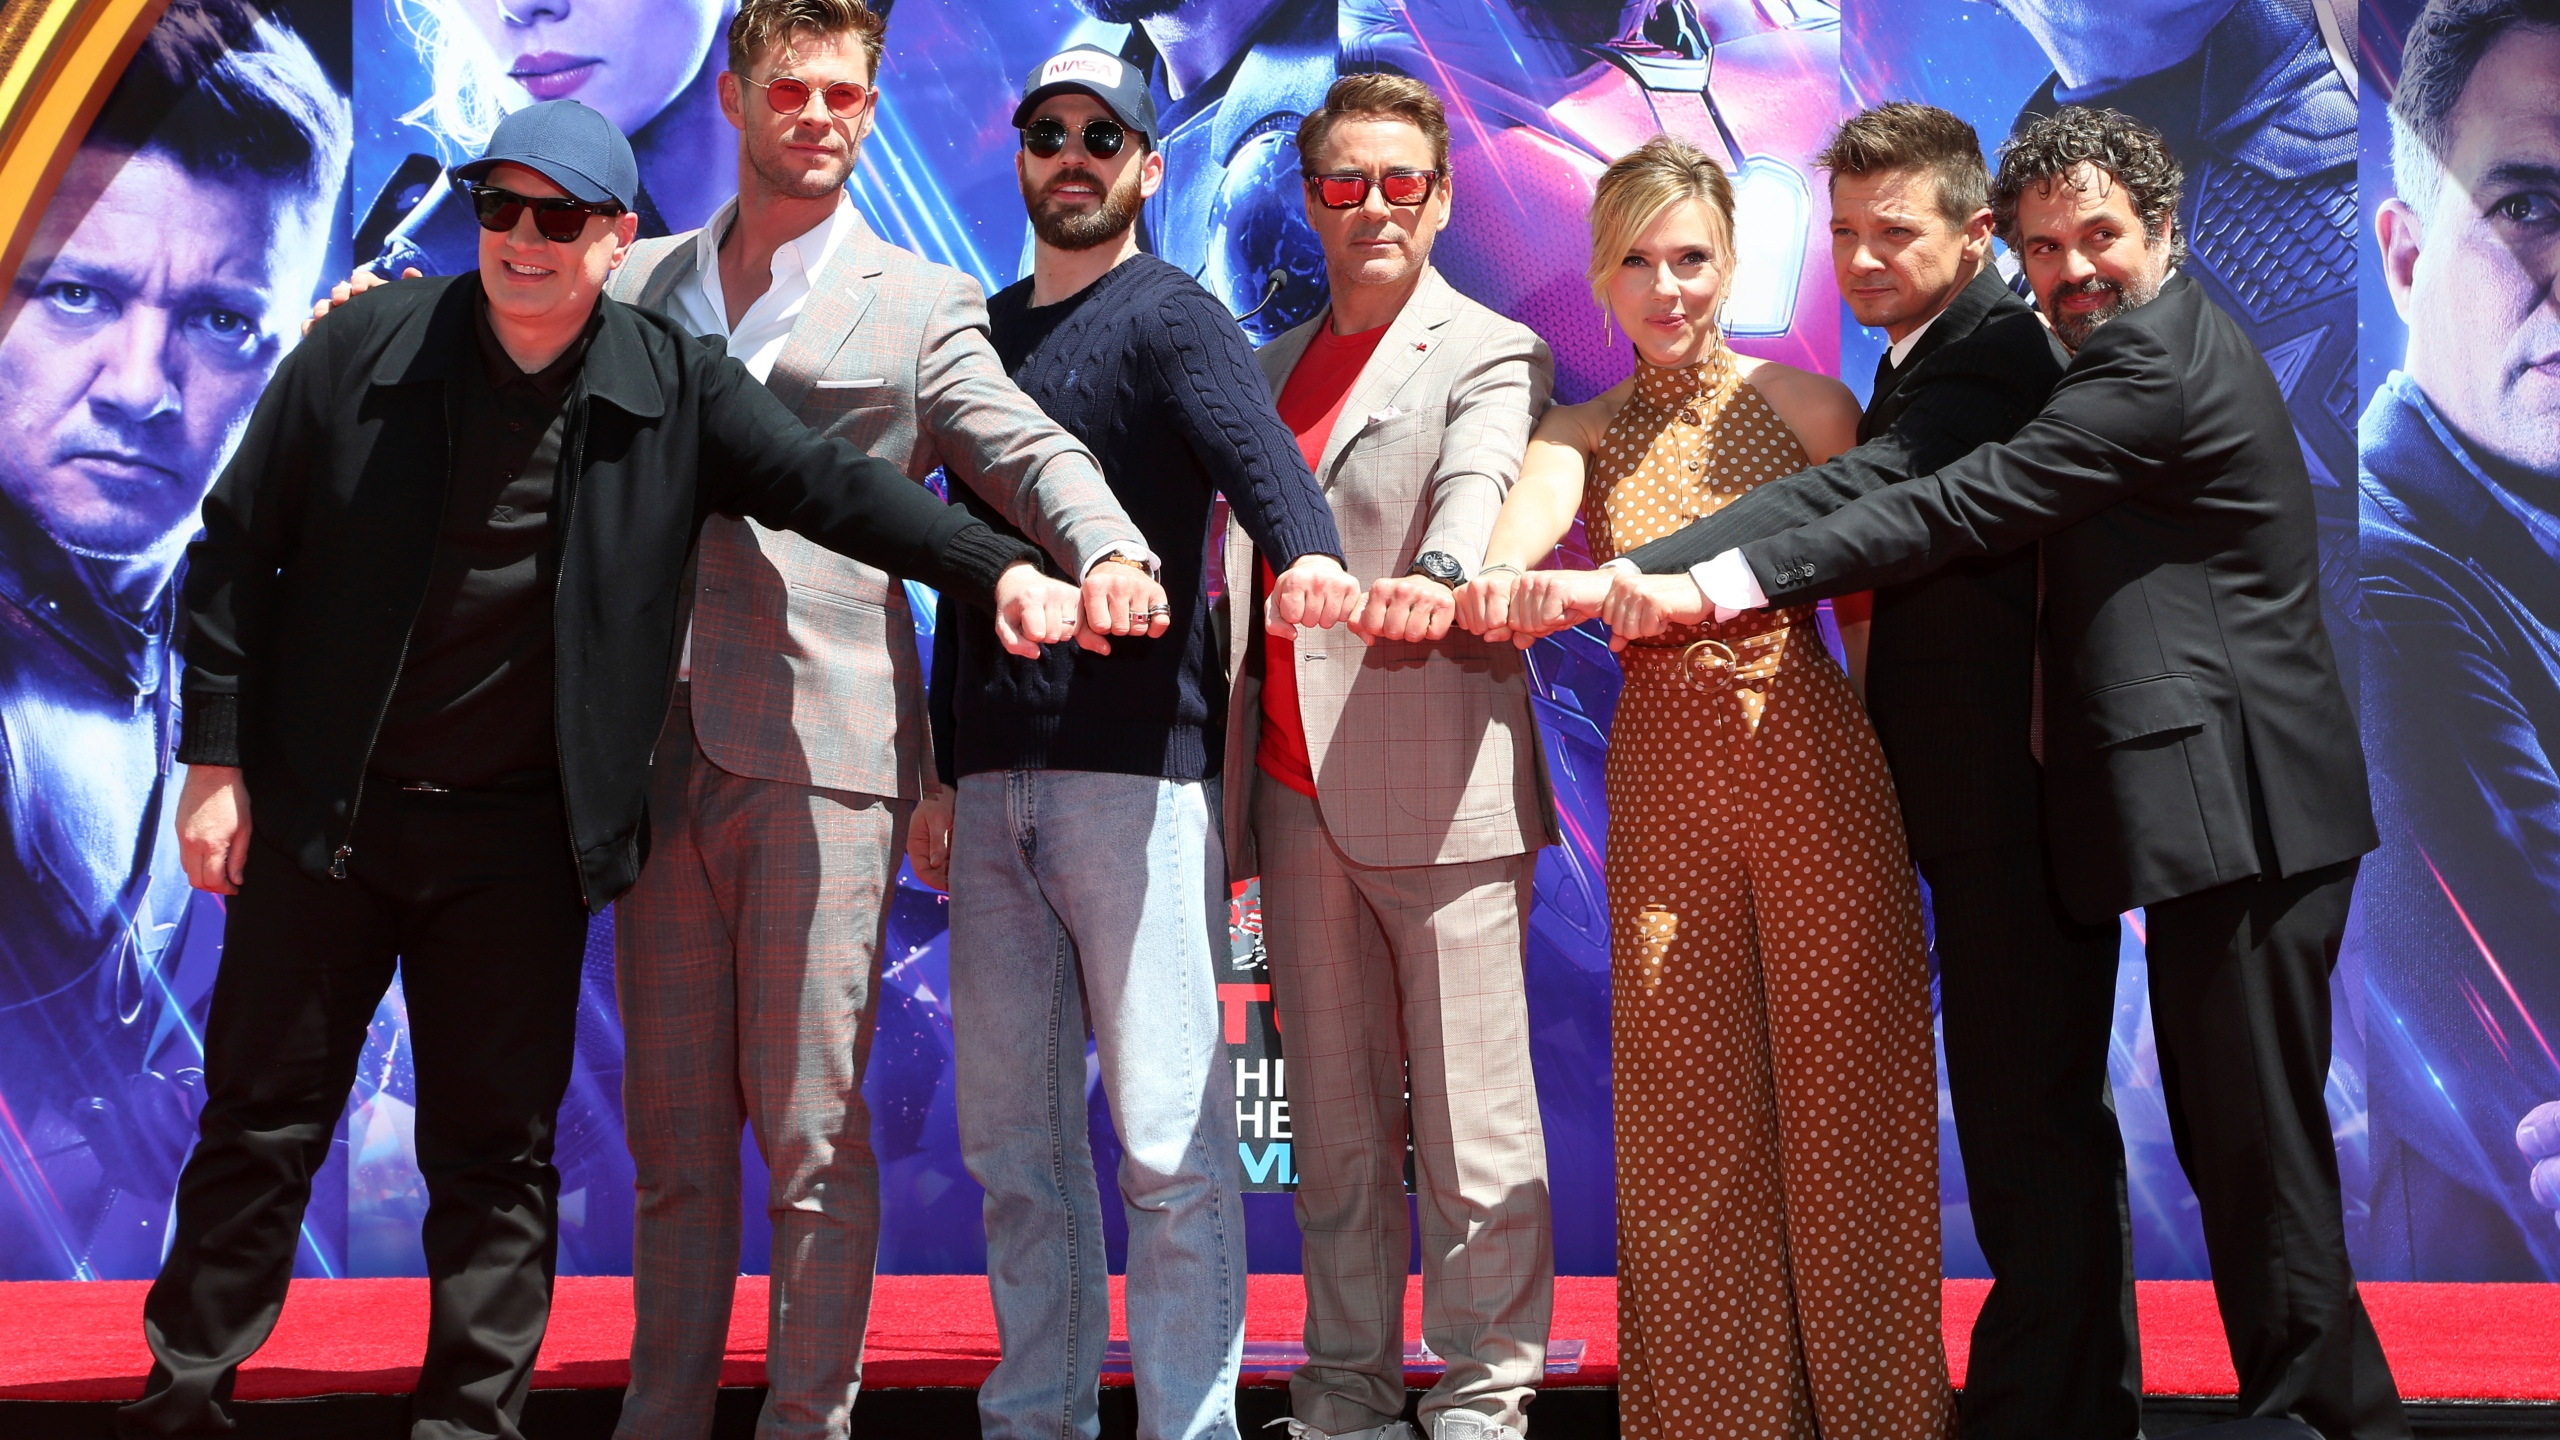 The_Cast_of__Avengers__End_Game__Hand_and_Footprint_Ceremony_76329-159532.jpg63599911